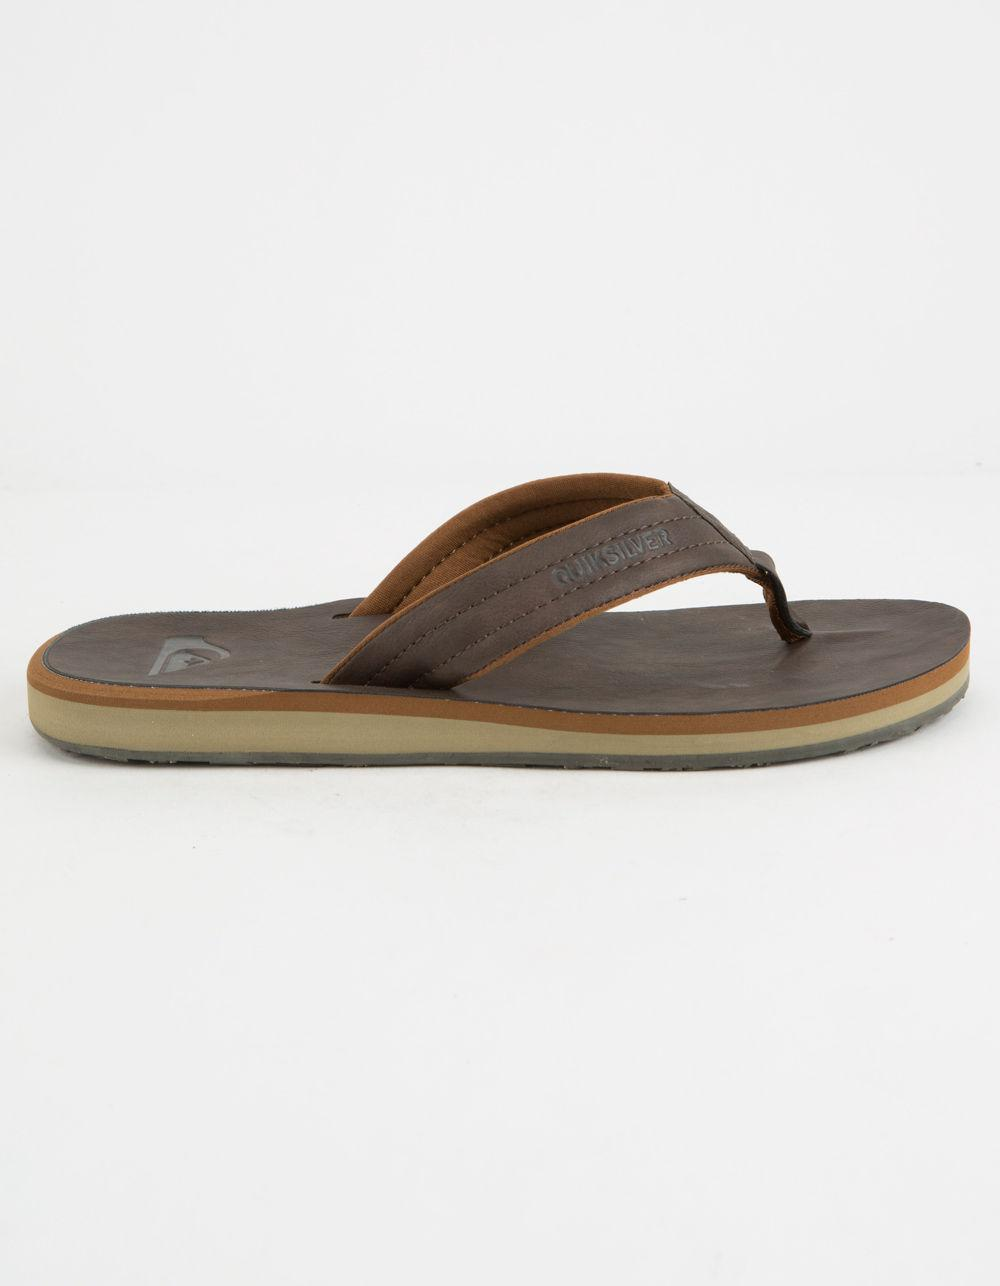 510ad4673a8f Lyst - Quiksilver Carver Nubuck Mens Sandals in Brown for Men